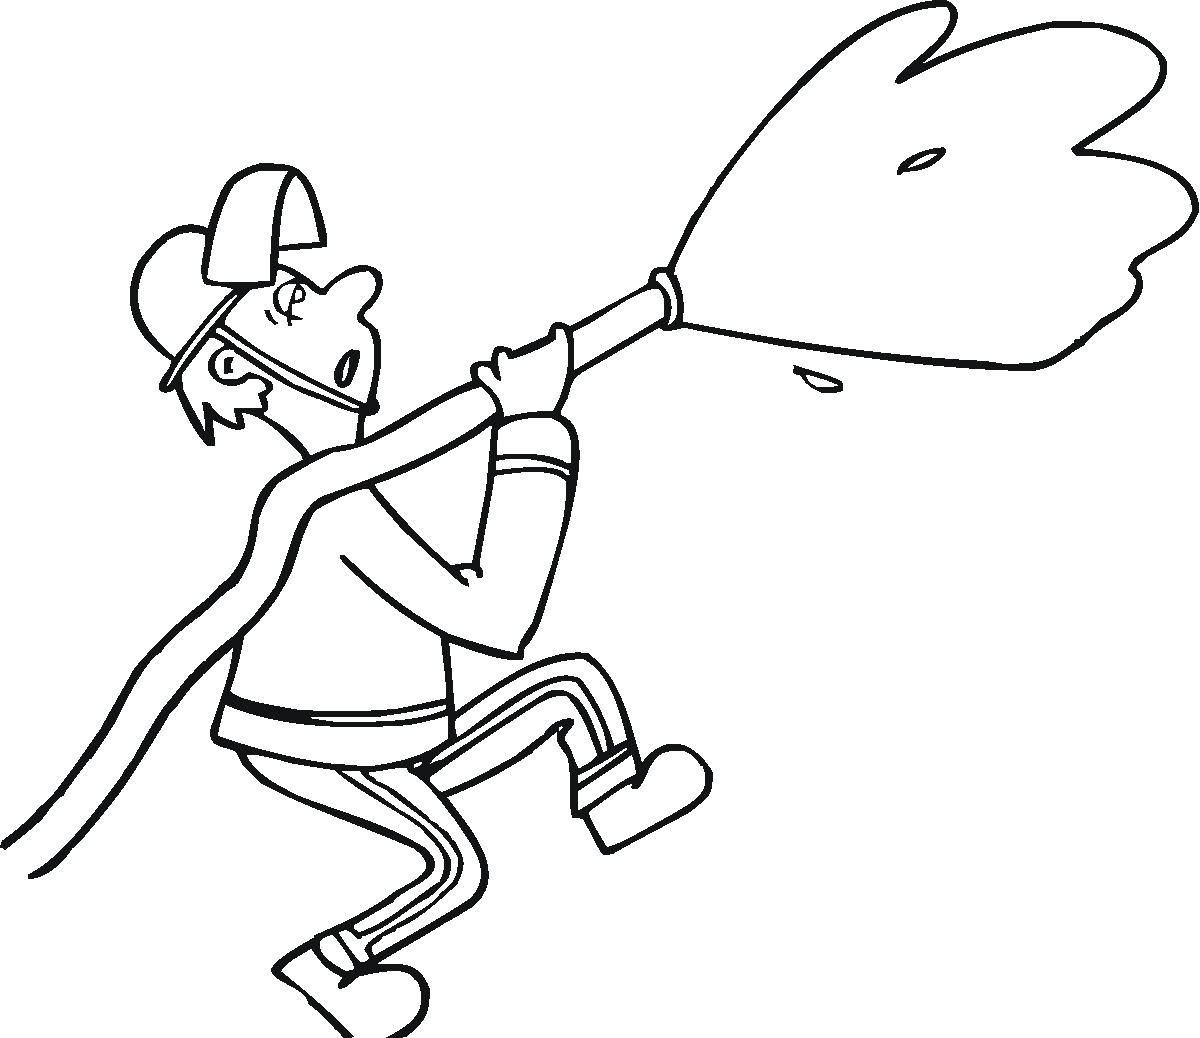 18 Best Fireman Coloring Pages For Kids